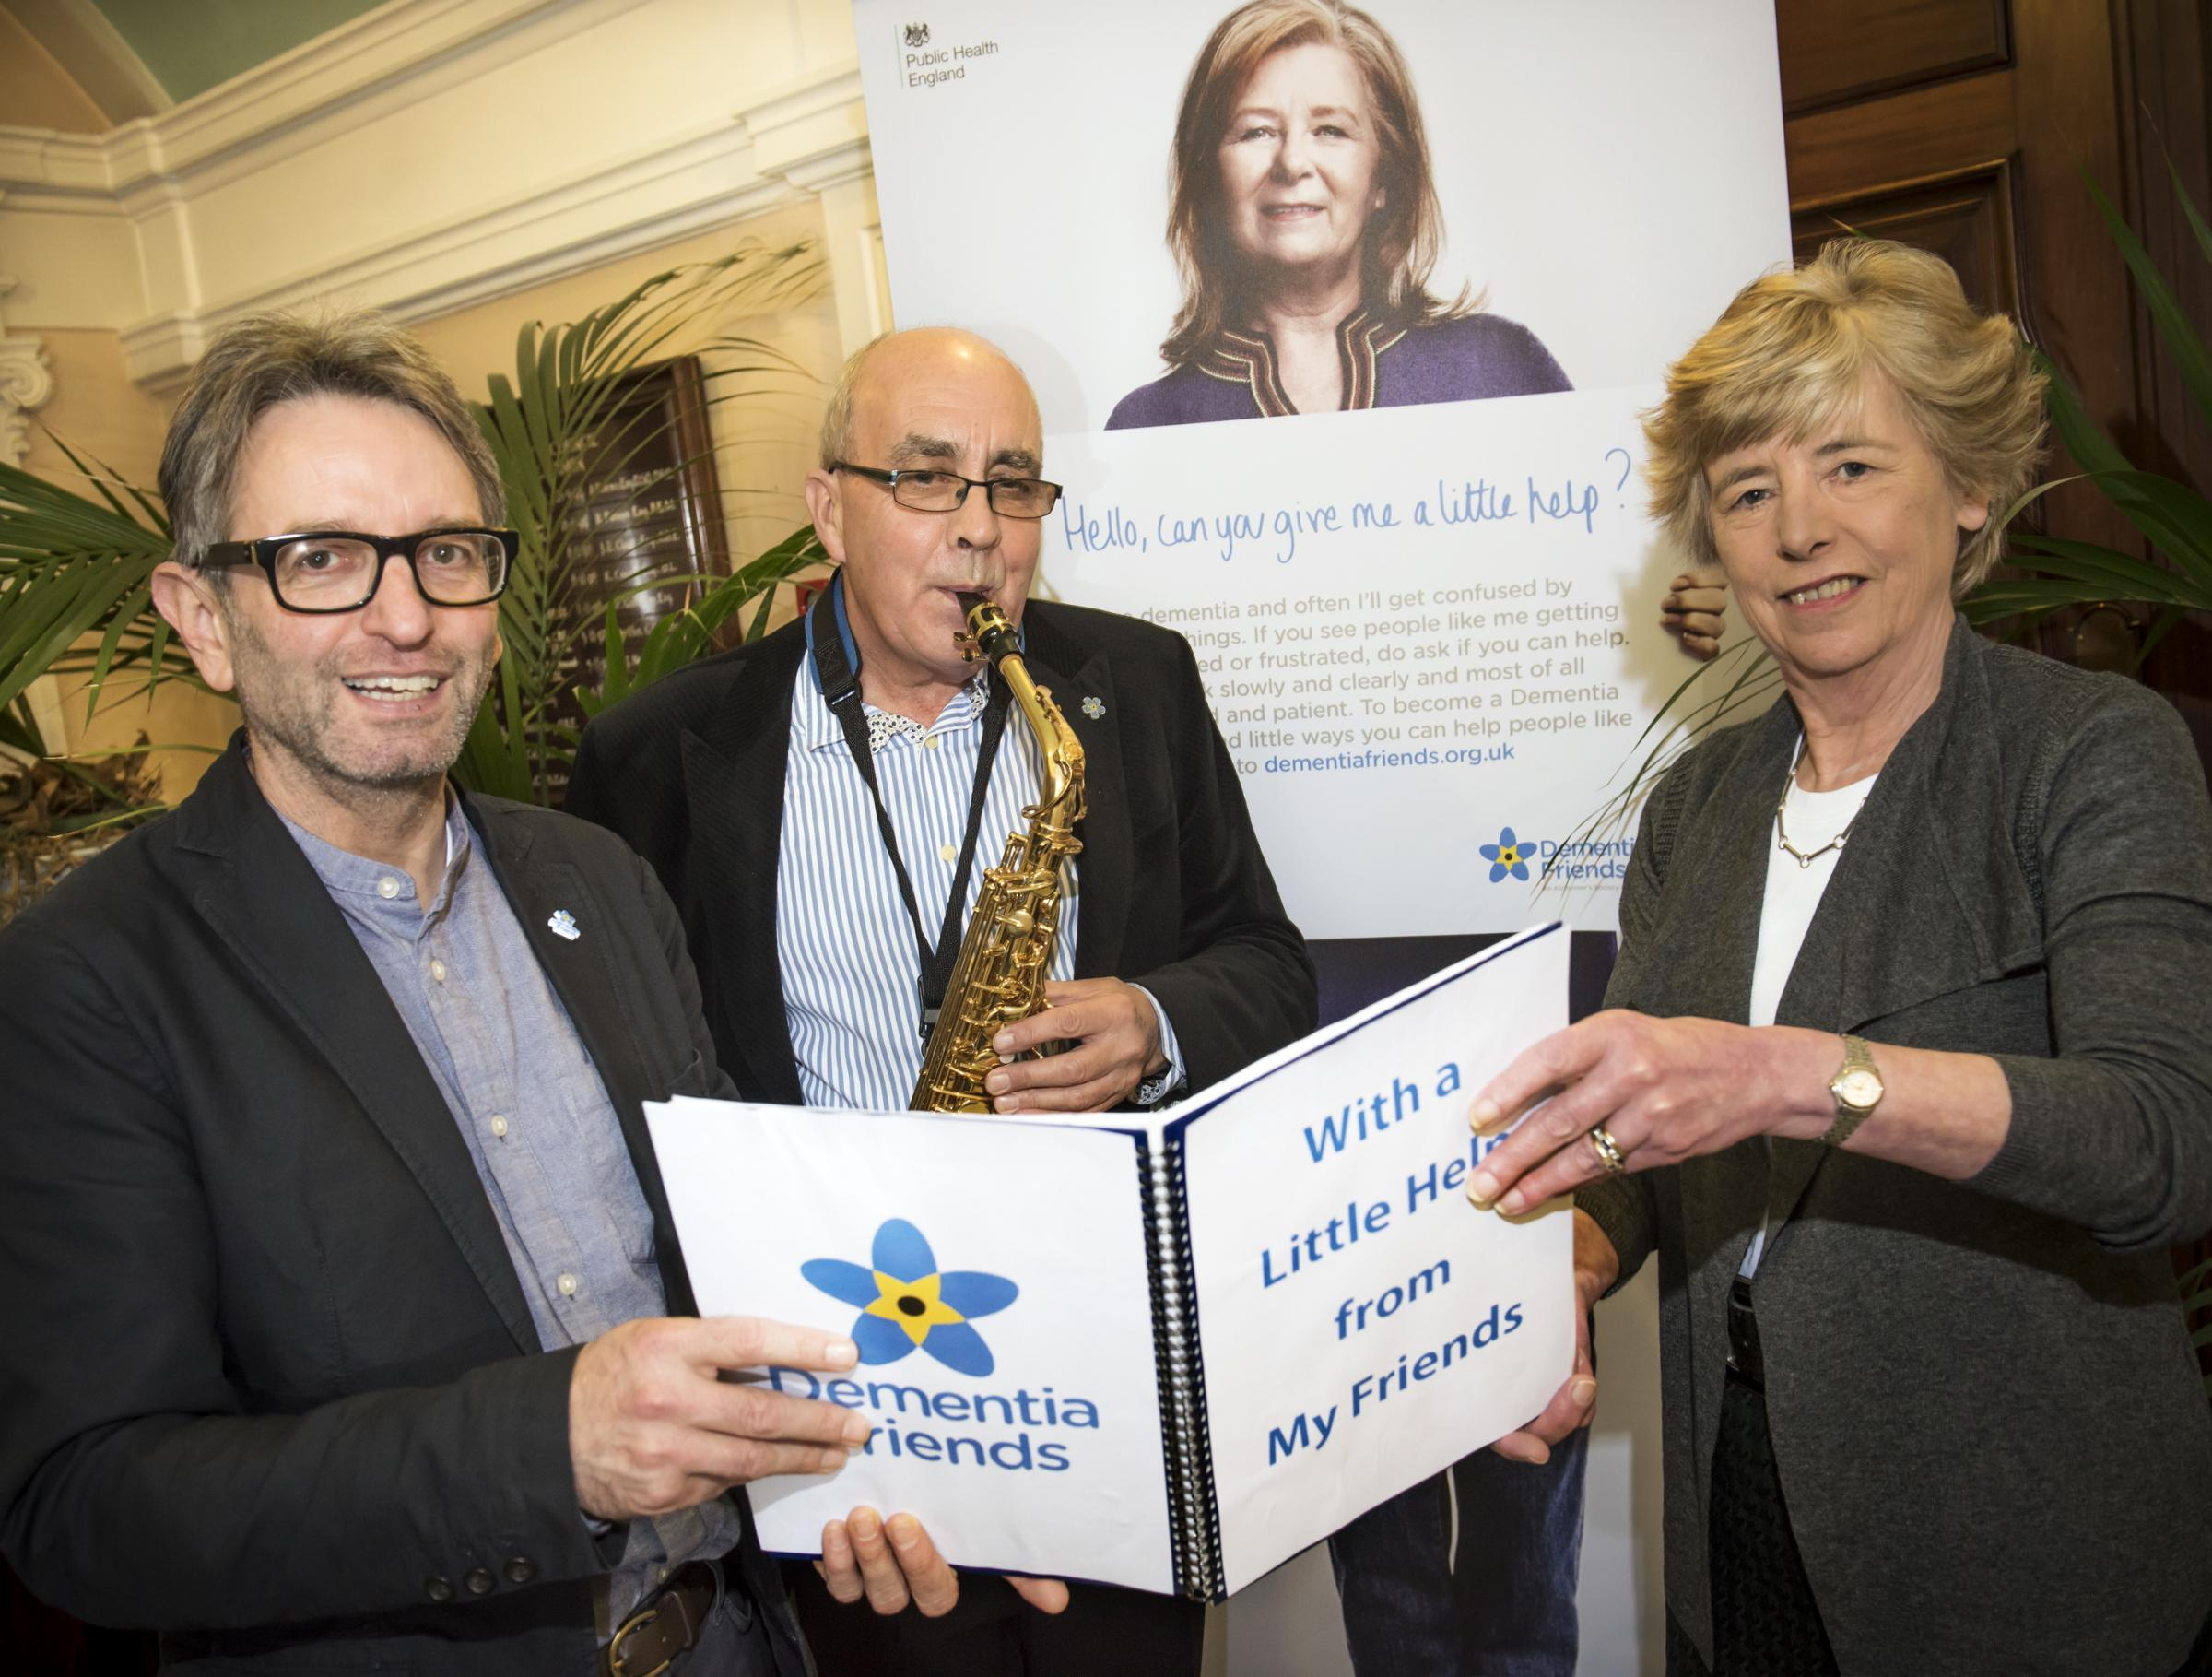 DEMENTIA FRIEND: Councillor Clare Wood and 600th Dementia Friend Martin Feekins listen to Chris Riley playing 'With a little help from my friends'.